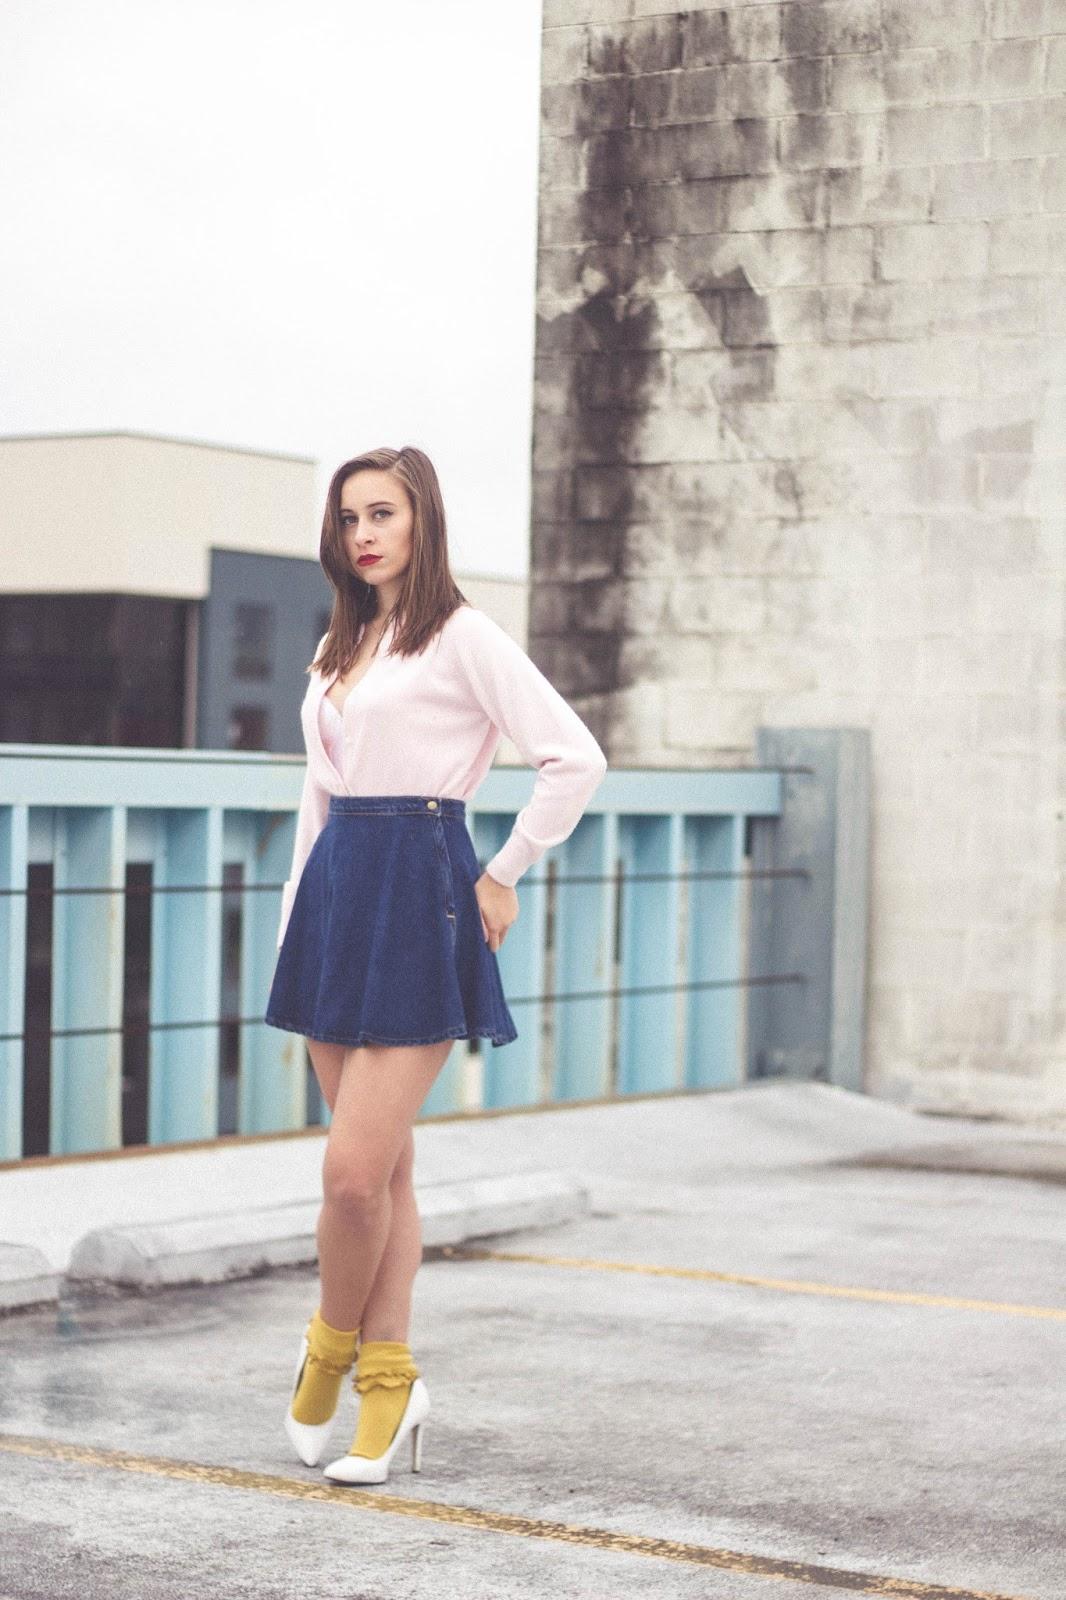 vintage, style, outfit, suzy bishop, tabbisocks, american apparel, denim circle skirt, ruffle socks, heels, pink fuzzy sweater, fall outfit, wes anderson,